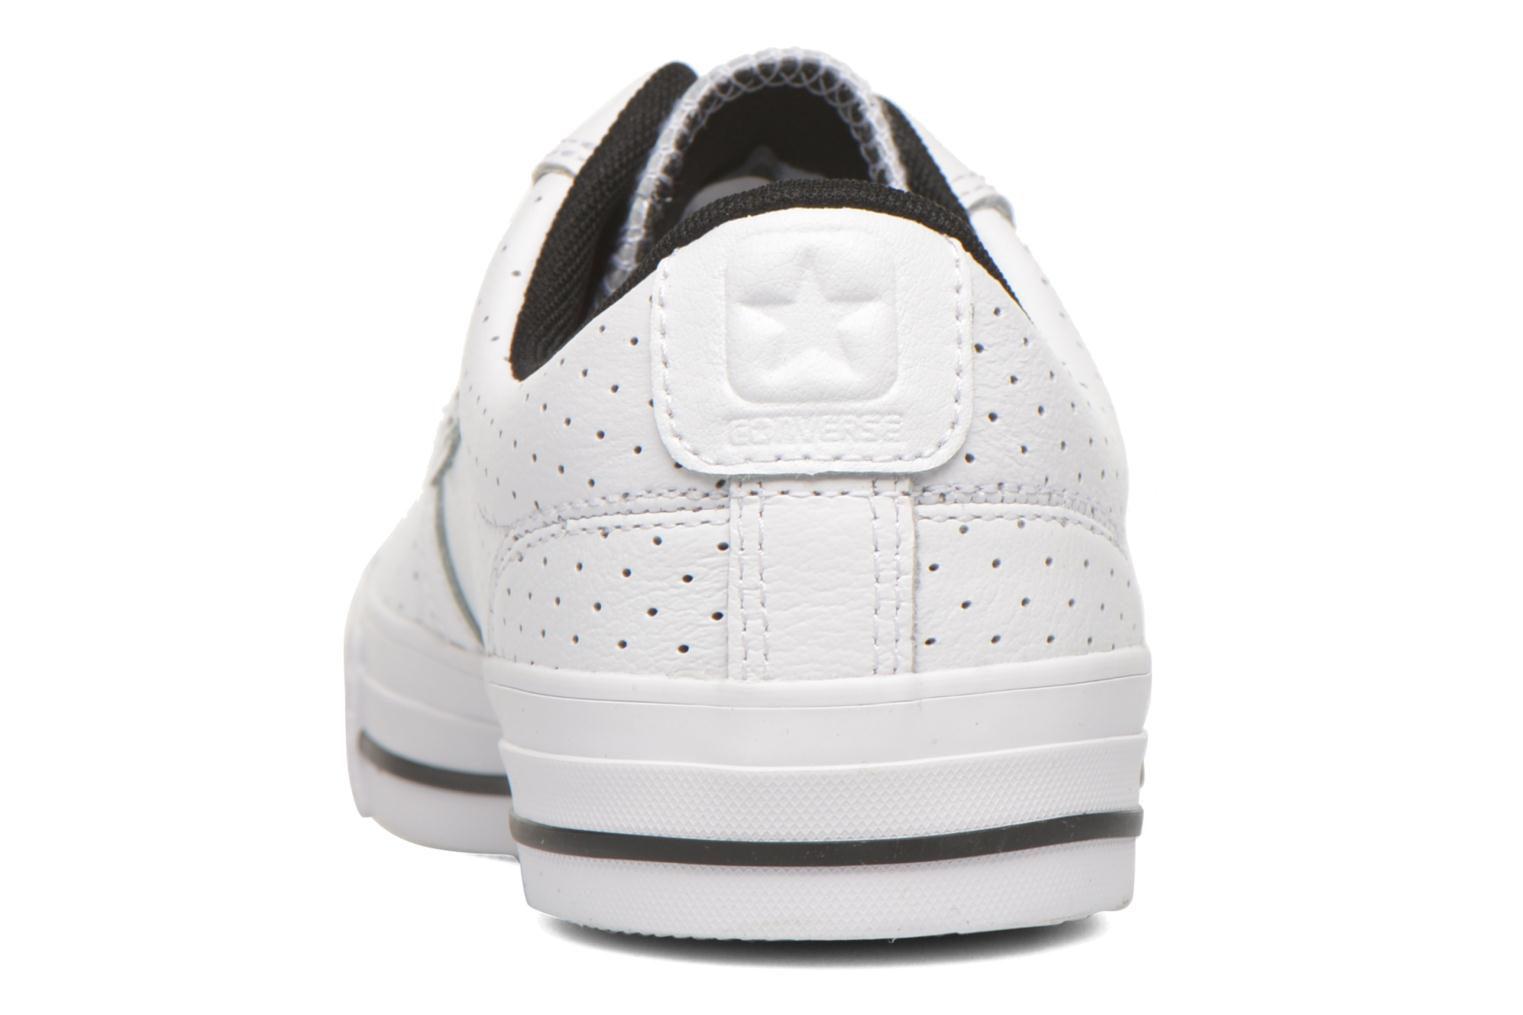 Star Player Cuir Ev W WHite/White/Black